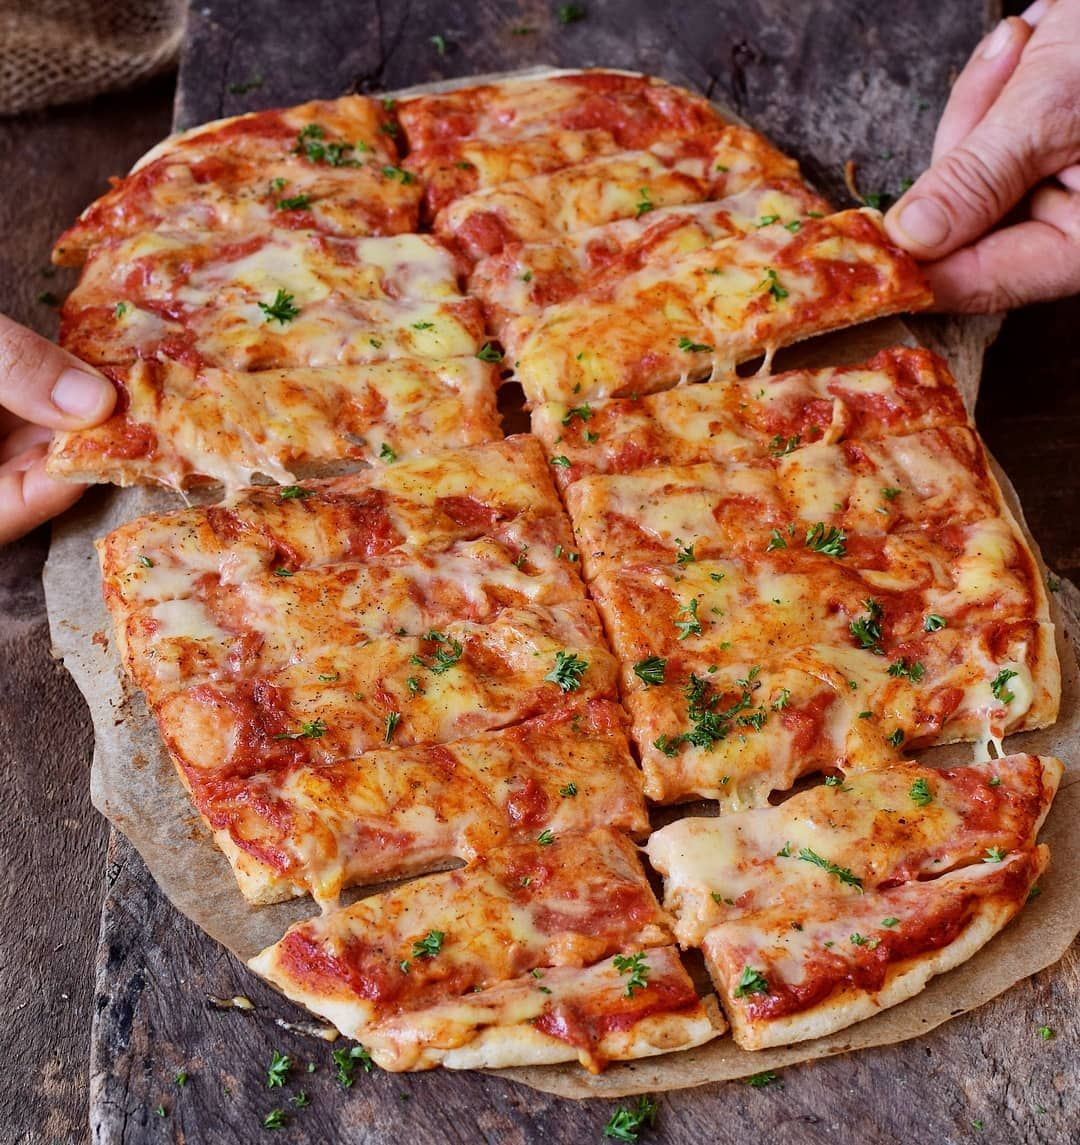 Pizza Feast Who Wants A Virtual Slice Or Maybe Two I Shared This Delicious Vegan Pizza With My Vegan Cheese Sauce Vegan Cheese Sauce Recipe Vegan Cheese